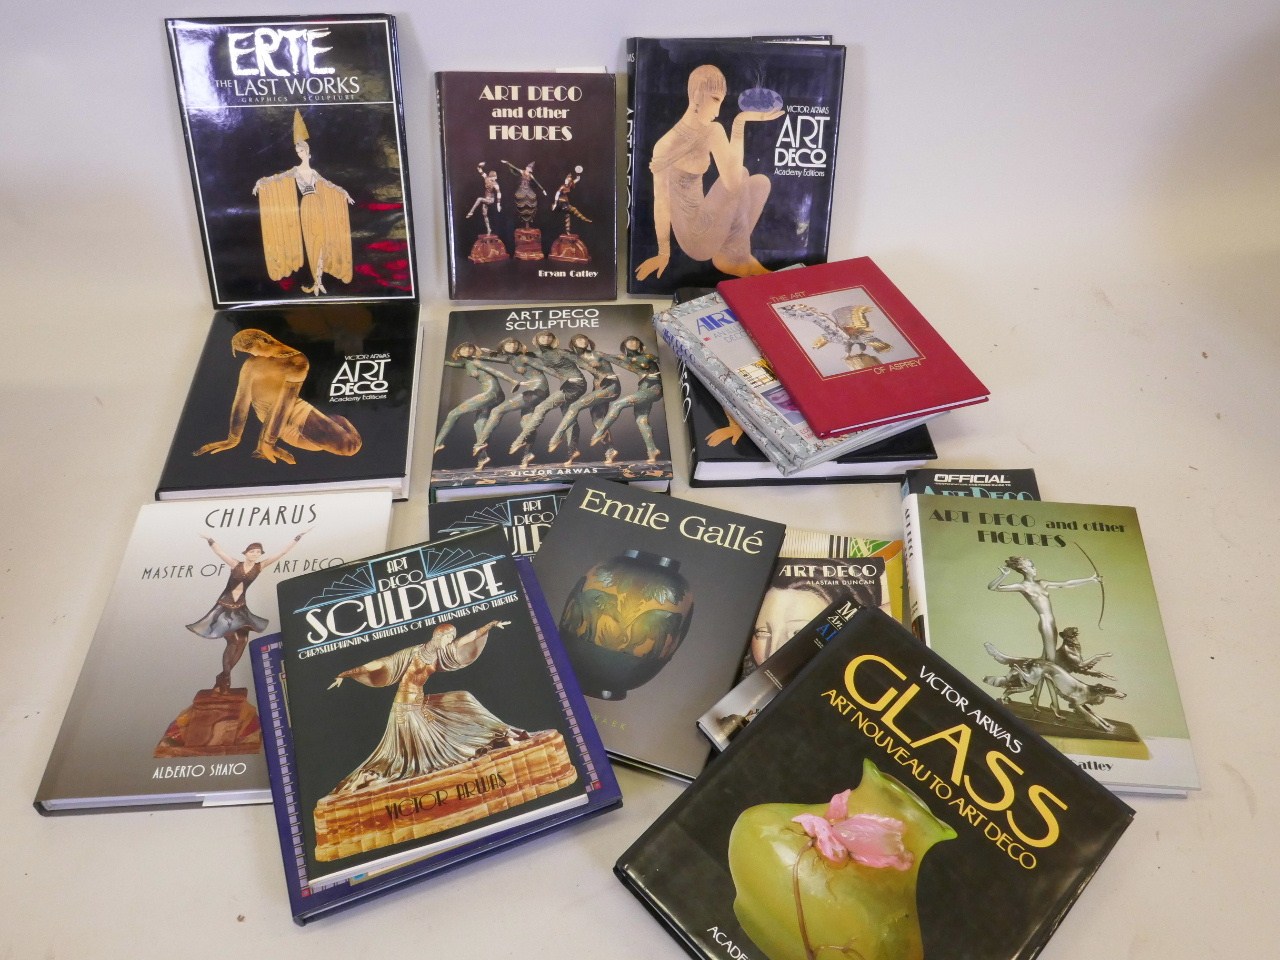 Lot 51 - A quantity of reference books on Art Deco, including Bryan Catley, Art Deco and other figures,